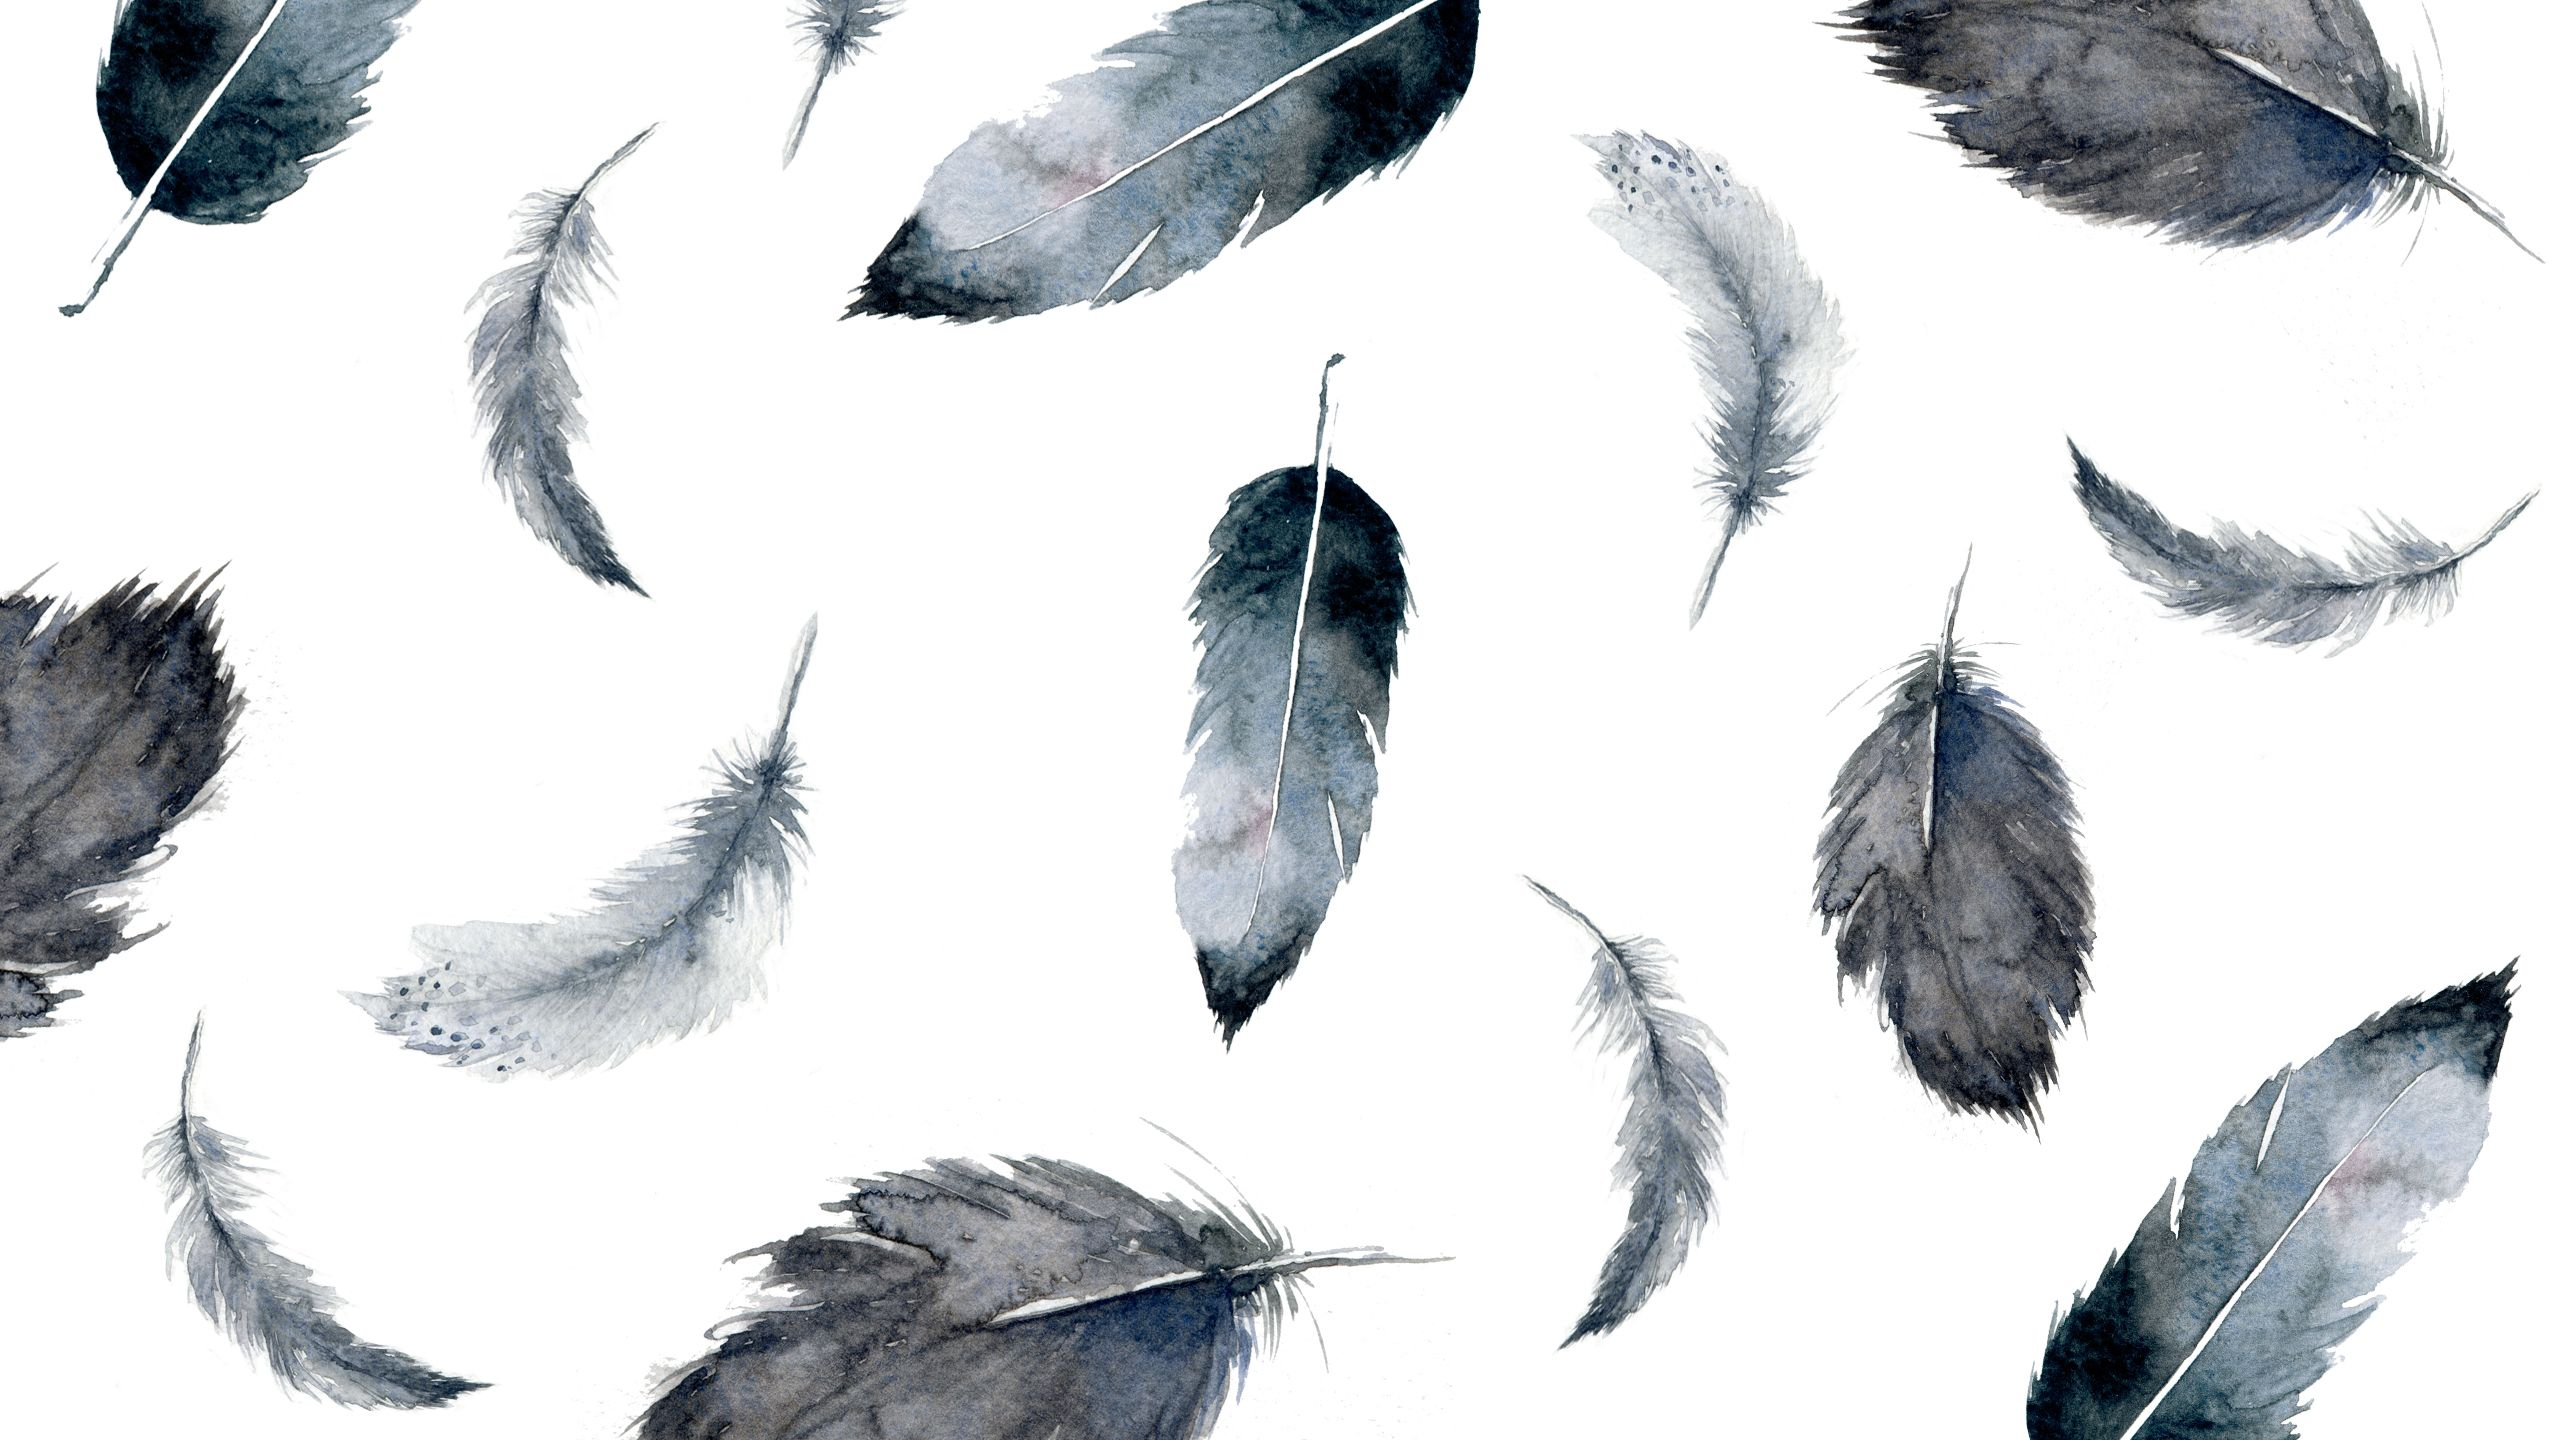 Feather Free wallpaper Simple Beyond simplebeyond